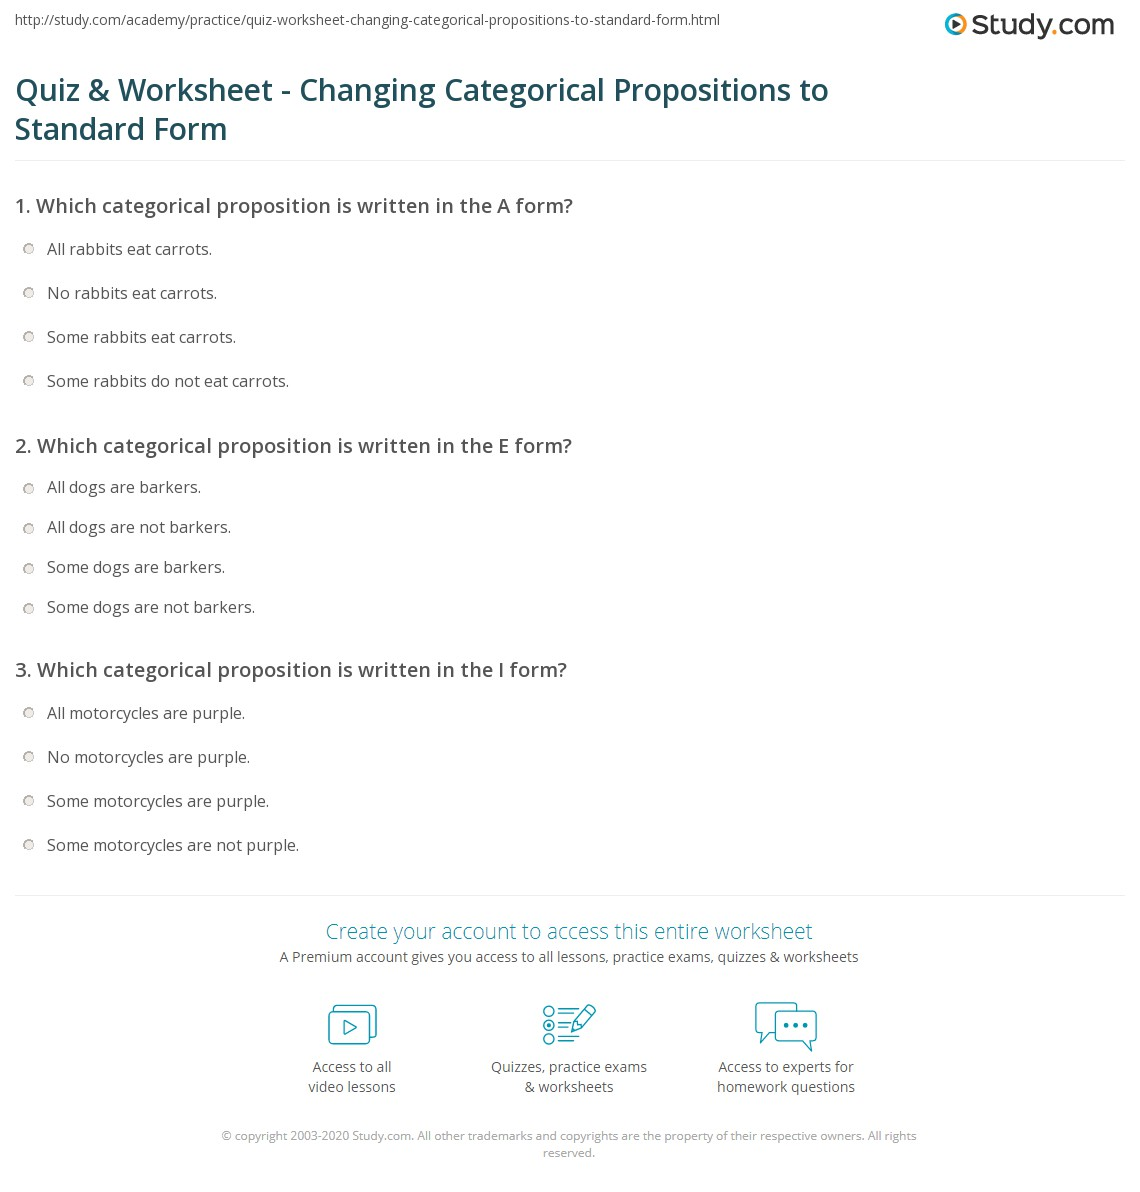 Quiz worksheet changing categorical propositions to standard print how to change categorical propositions to standard form worksheet falaconquin